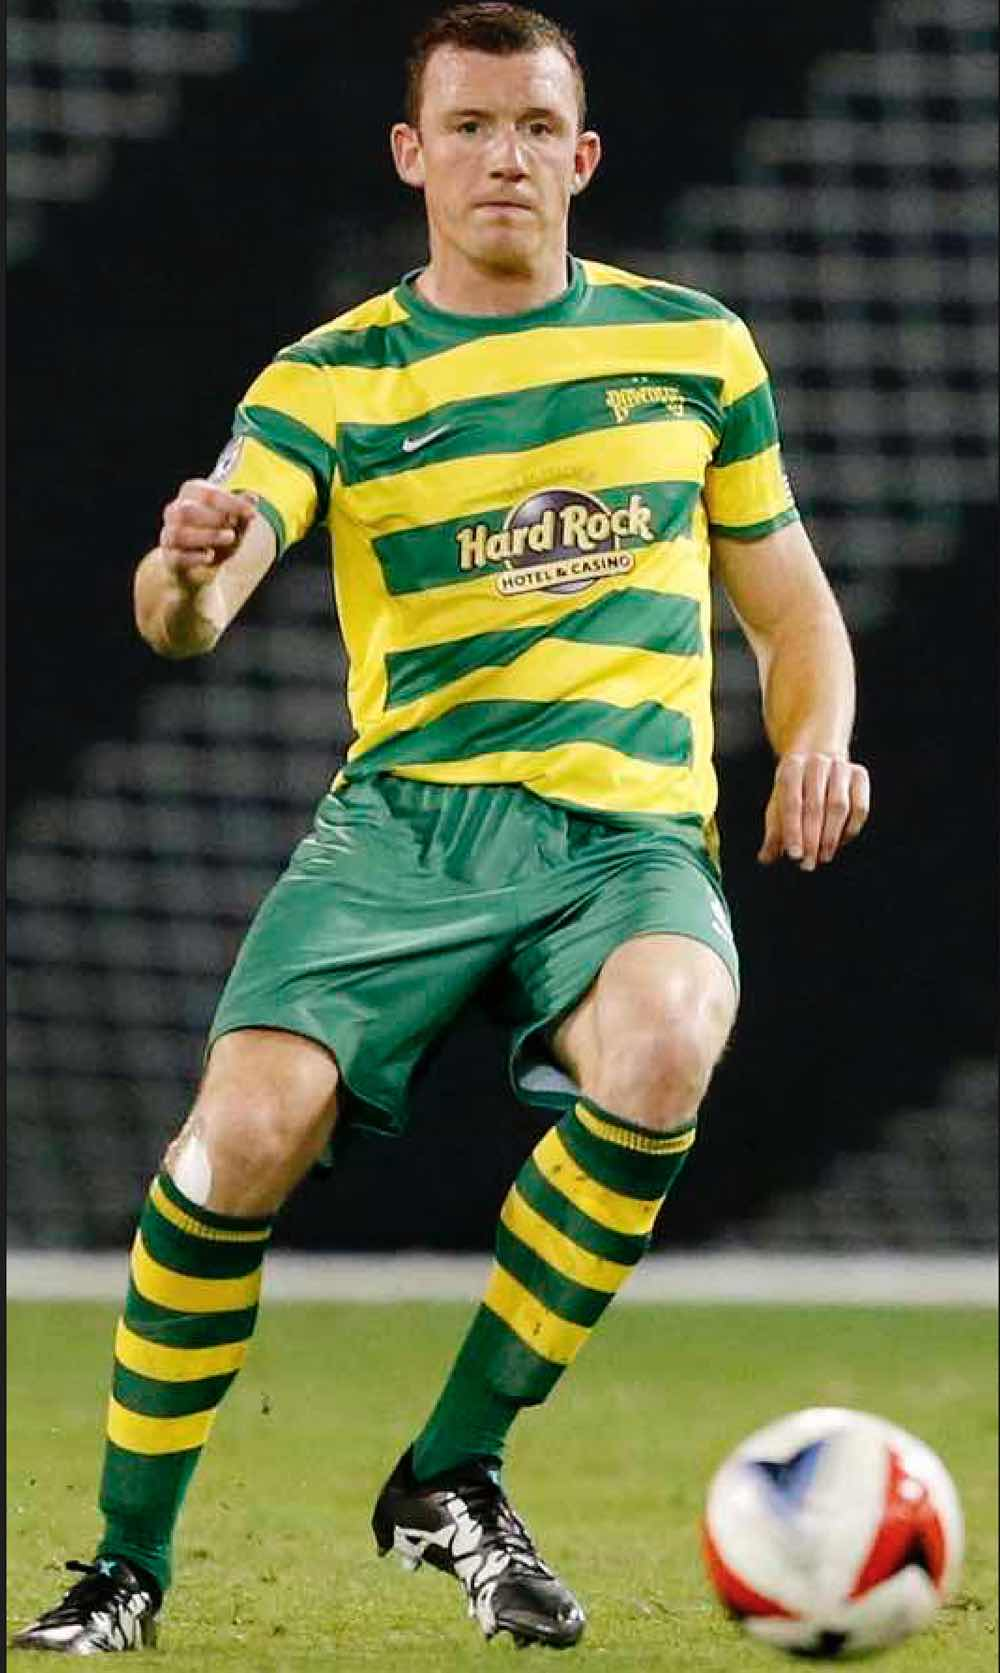 GETTING ROWDIE:  NEILL COLLINS DURING HIS TAMPA Bay DEBUT. PiCTURE:   Matt May/Tampa Bay Rowdies